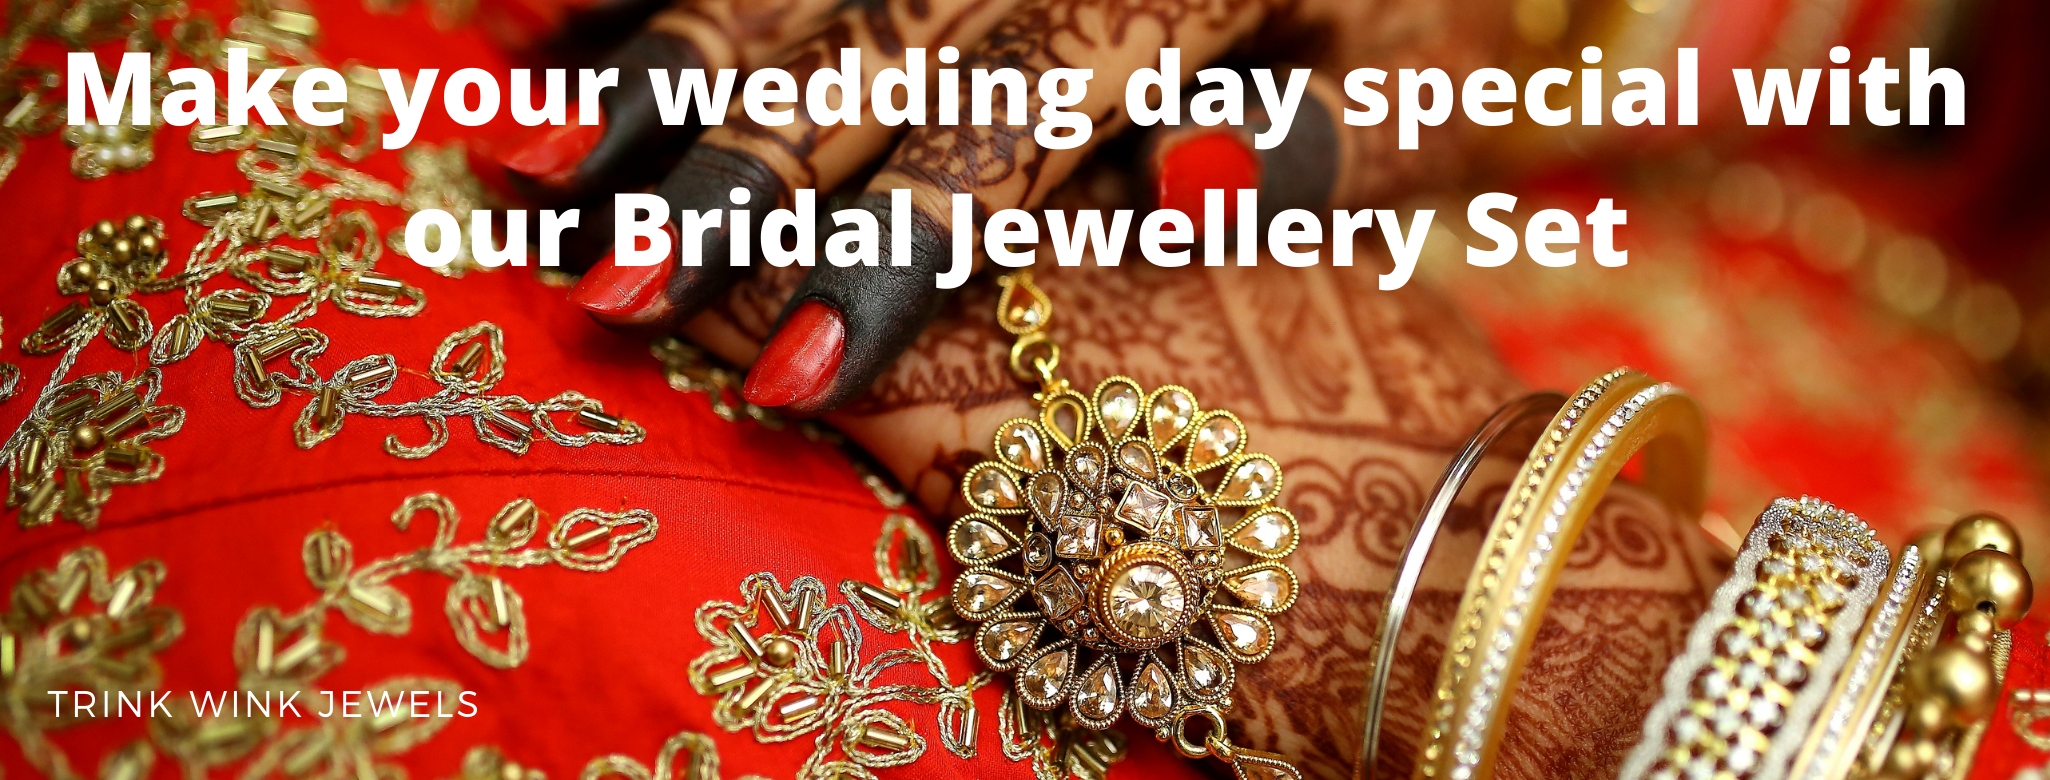 Make your wedding day special with our Bridal Jewellery Set